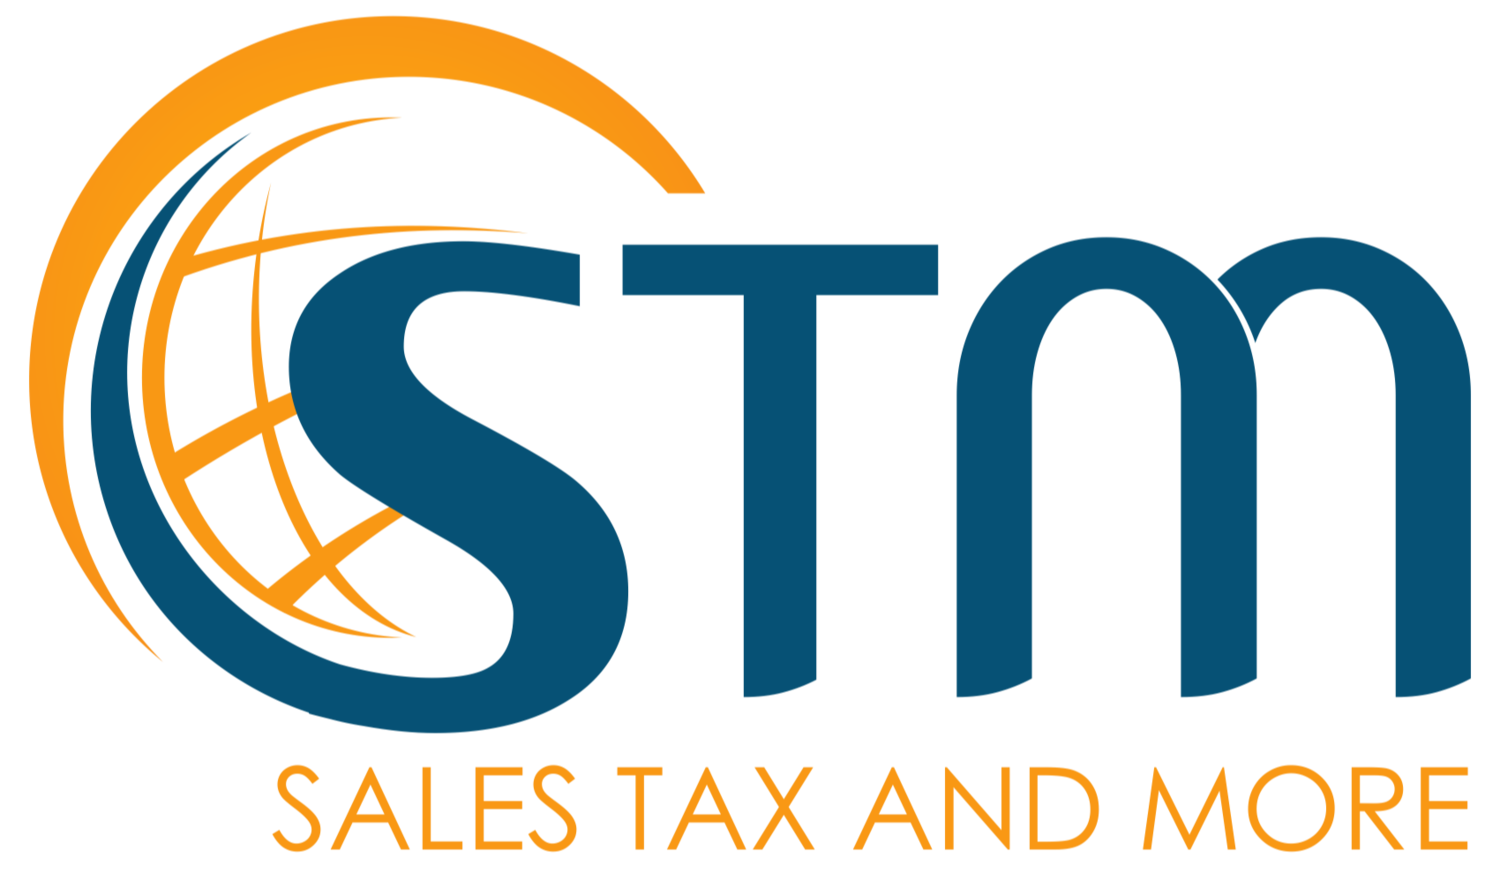 Sales Tax and More